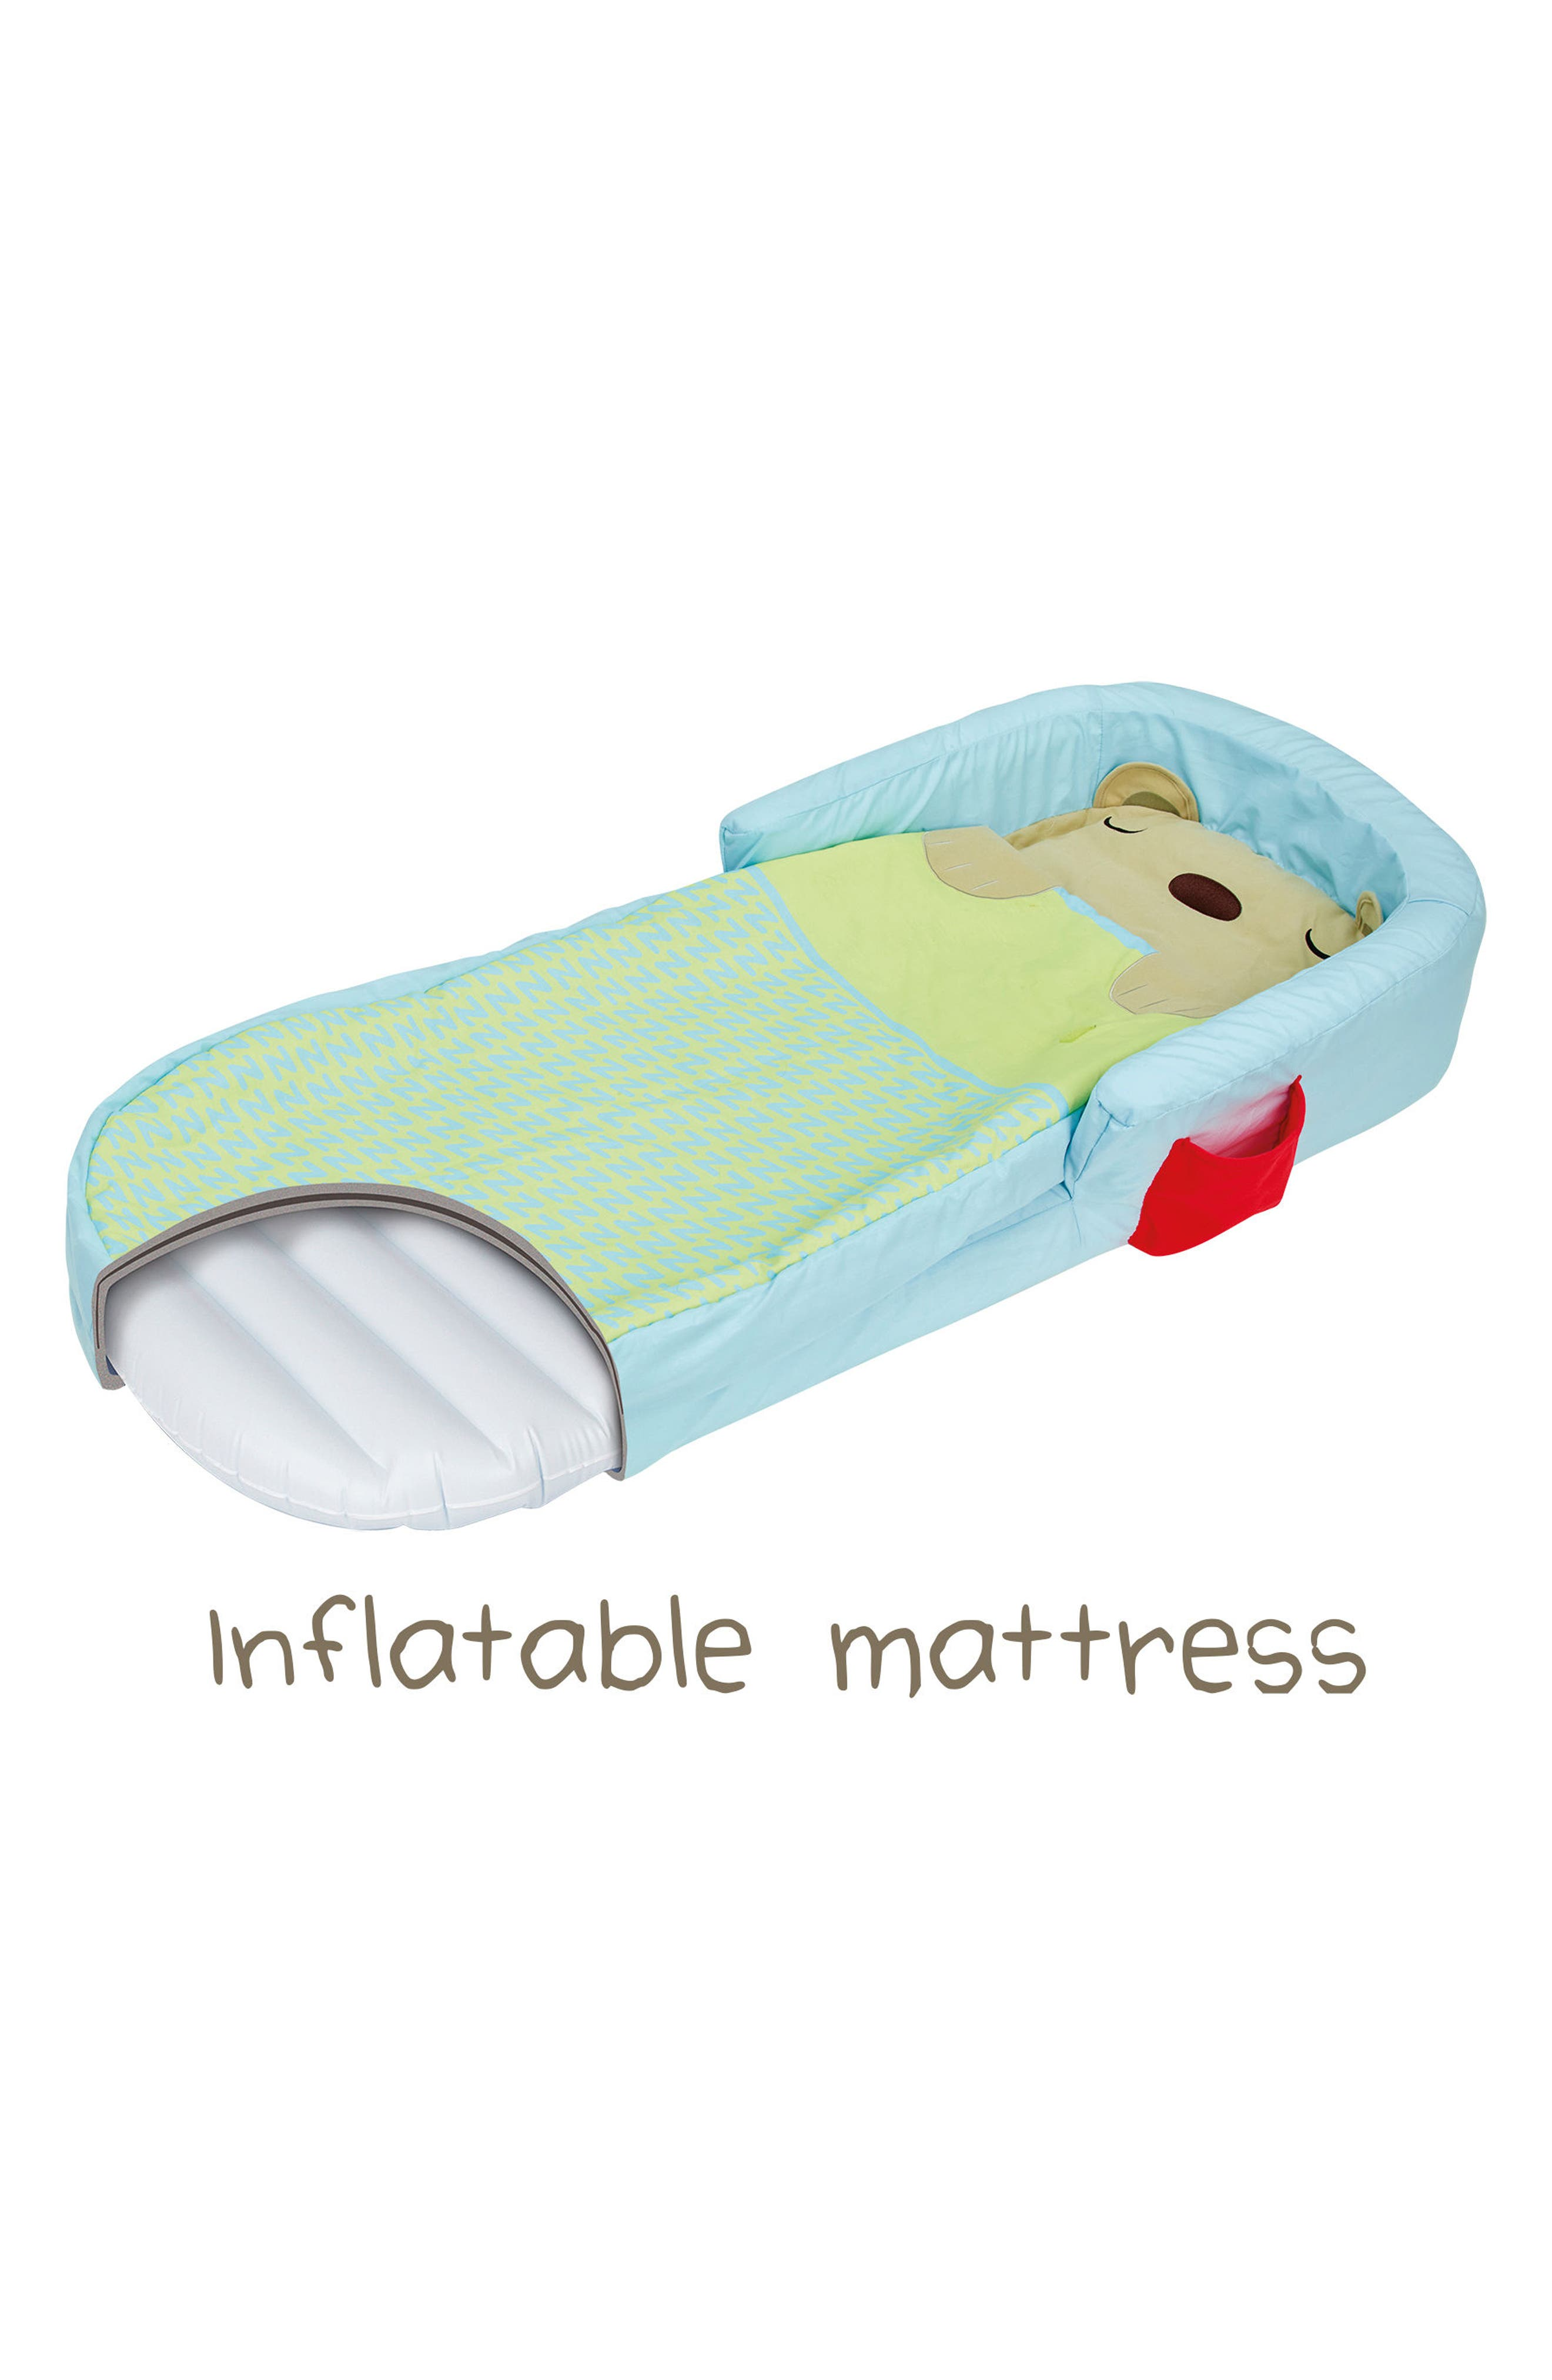 Bear Hug My First Ready Bed Inflatable Bed & Cover Set,                             Alternate thumbnail 5, color,                             Blue